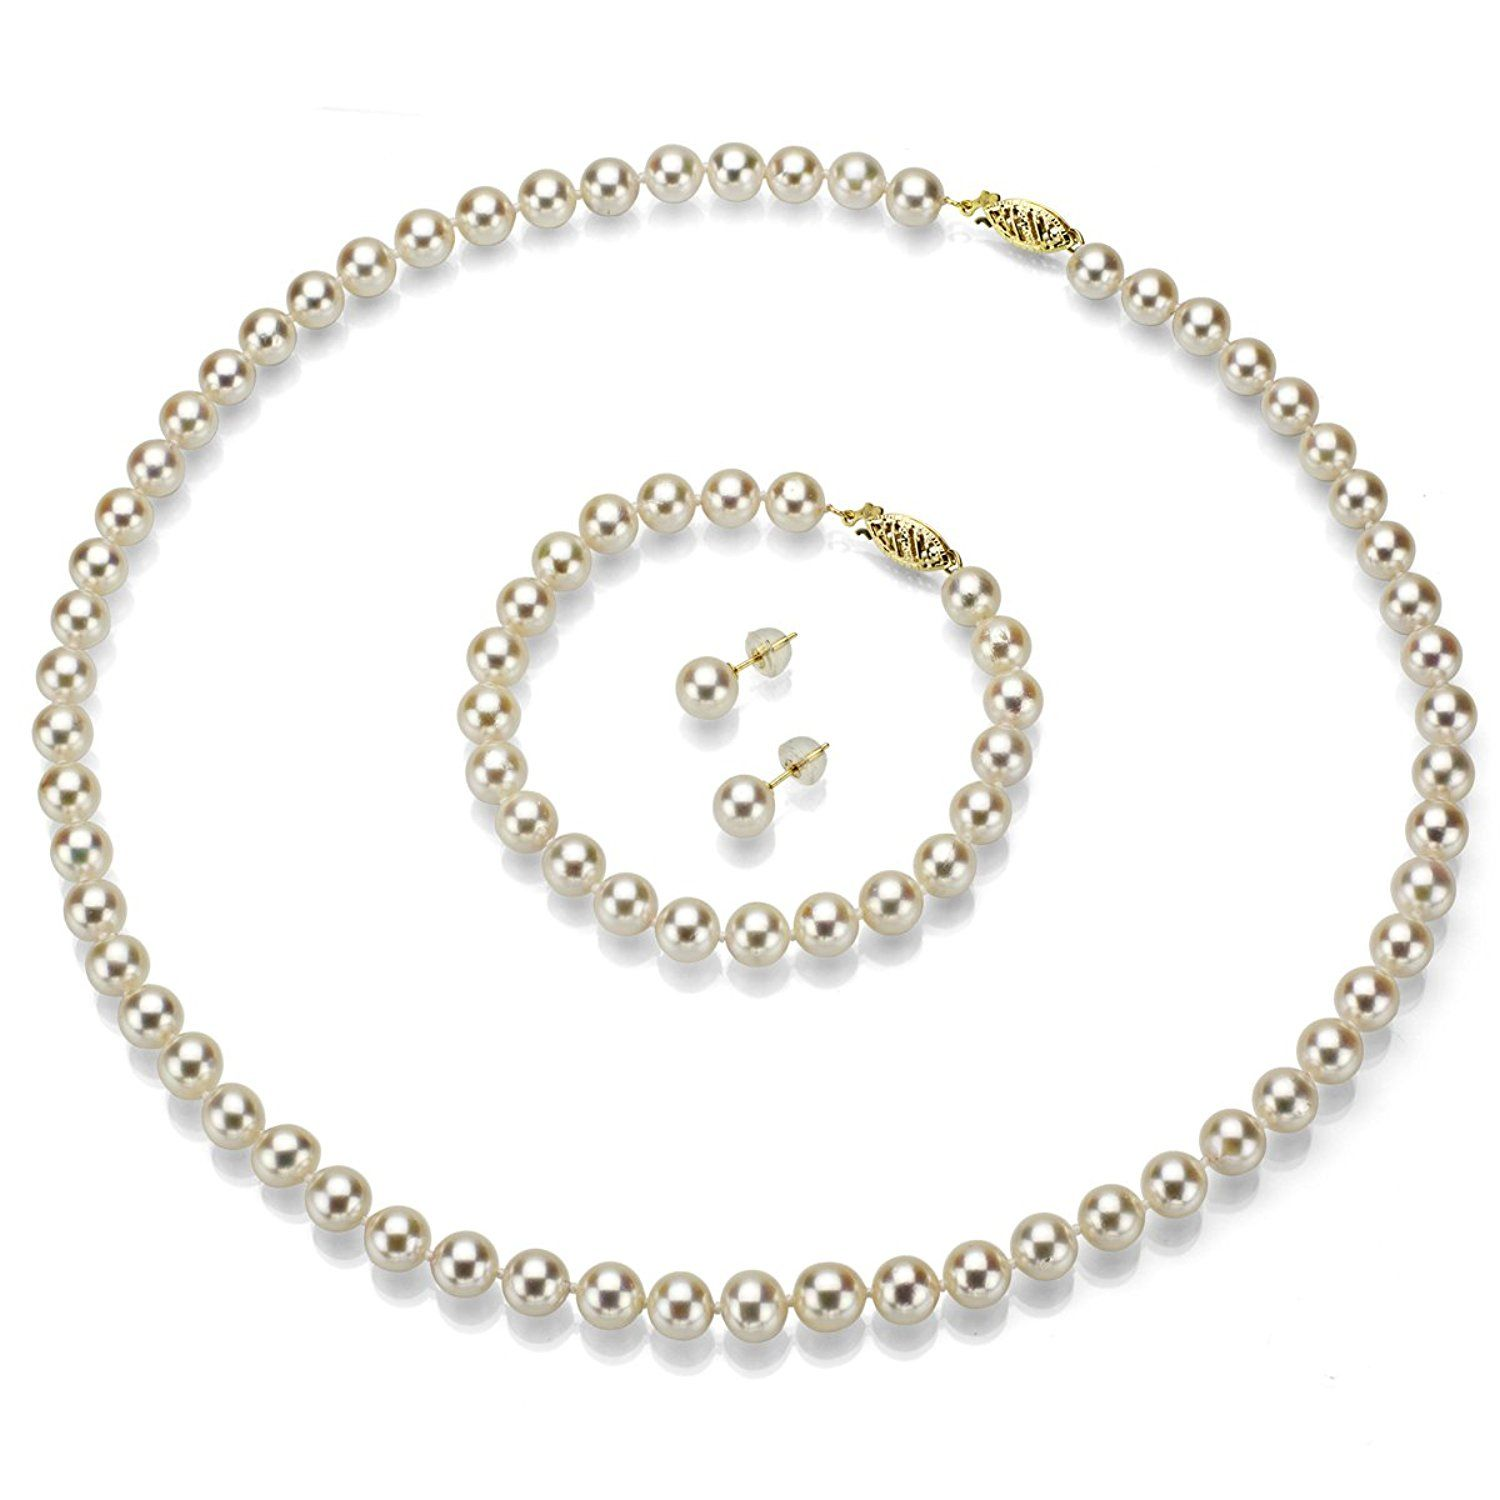 Cultured japanese akoya pearl necklace white pearl bracelet and k